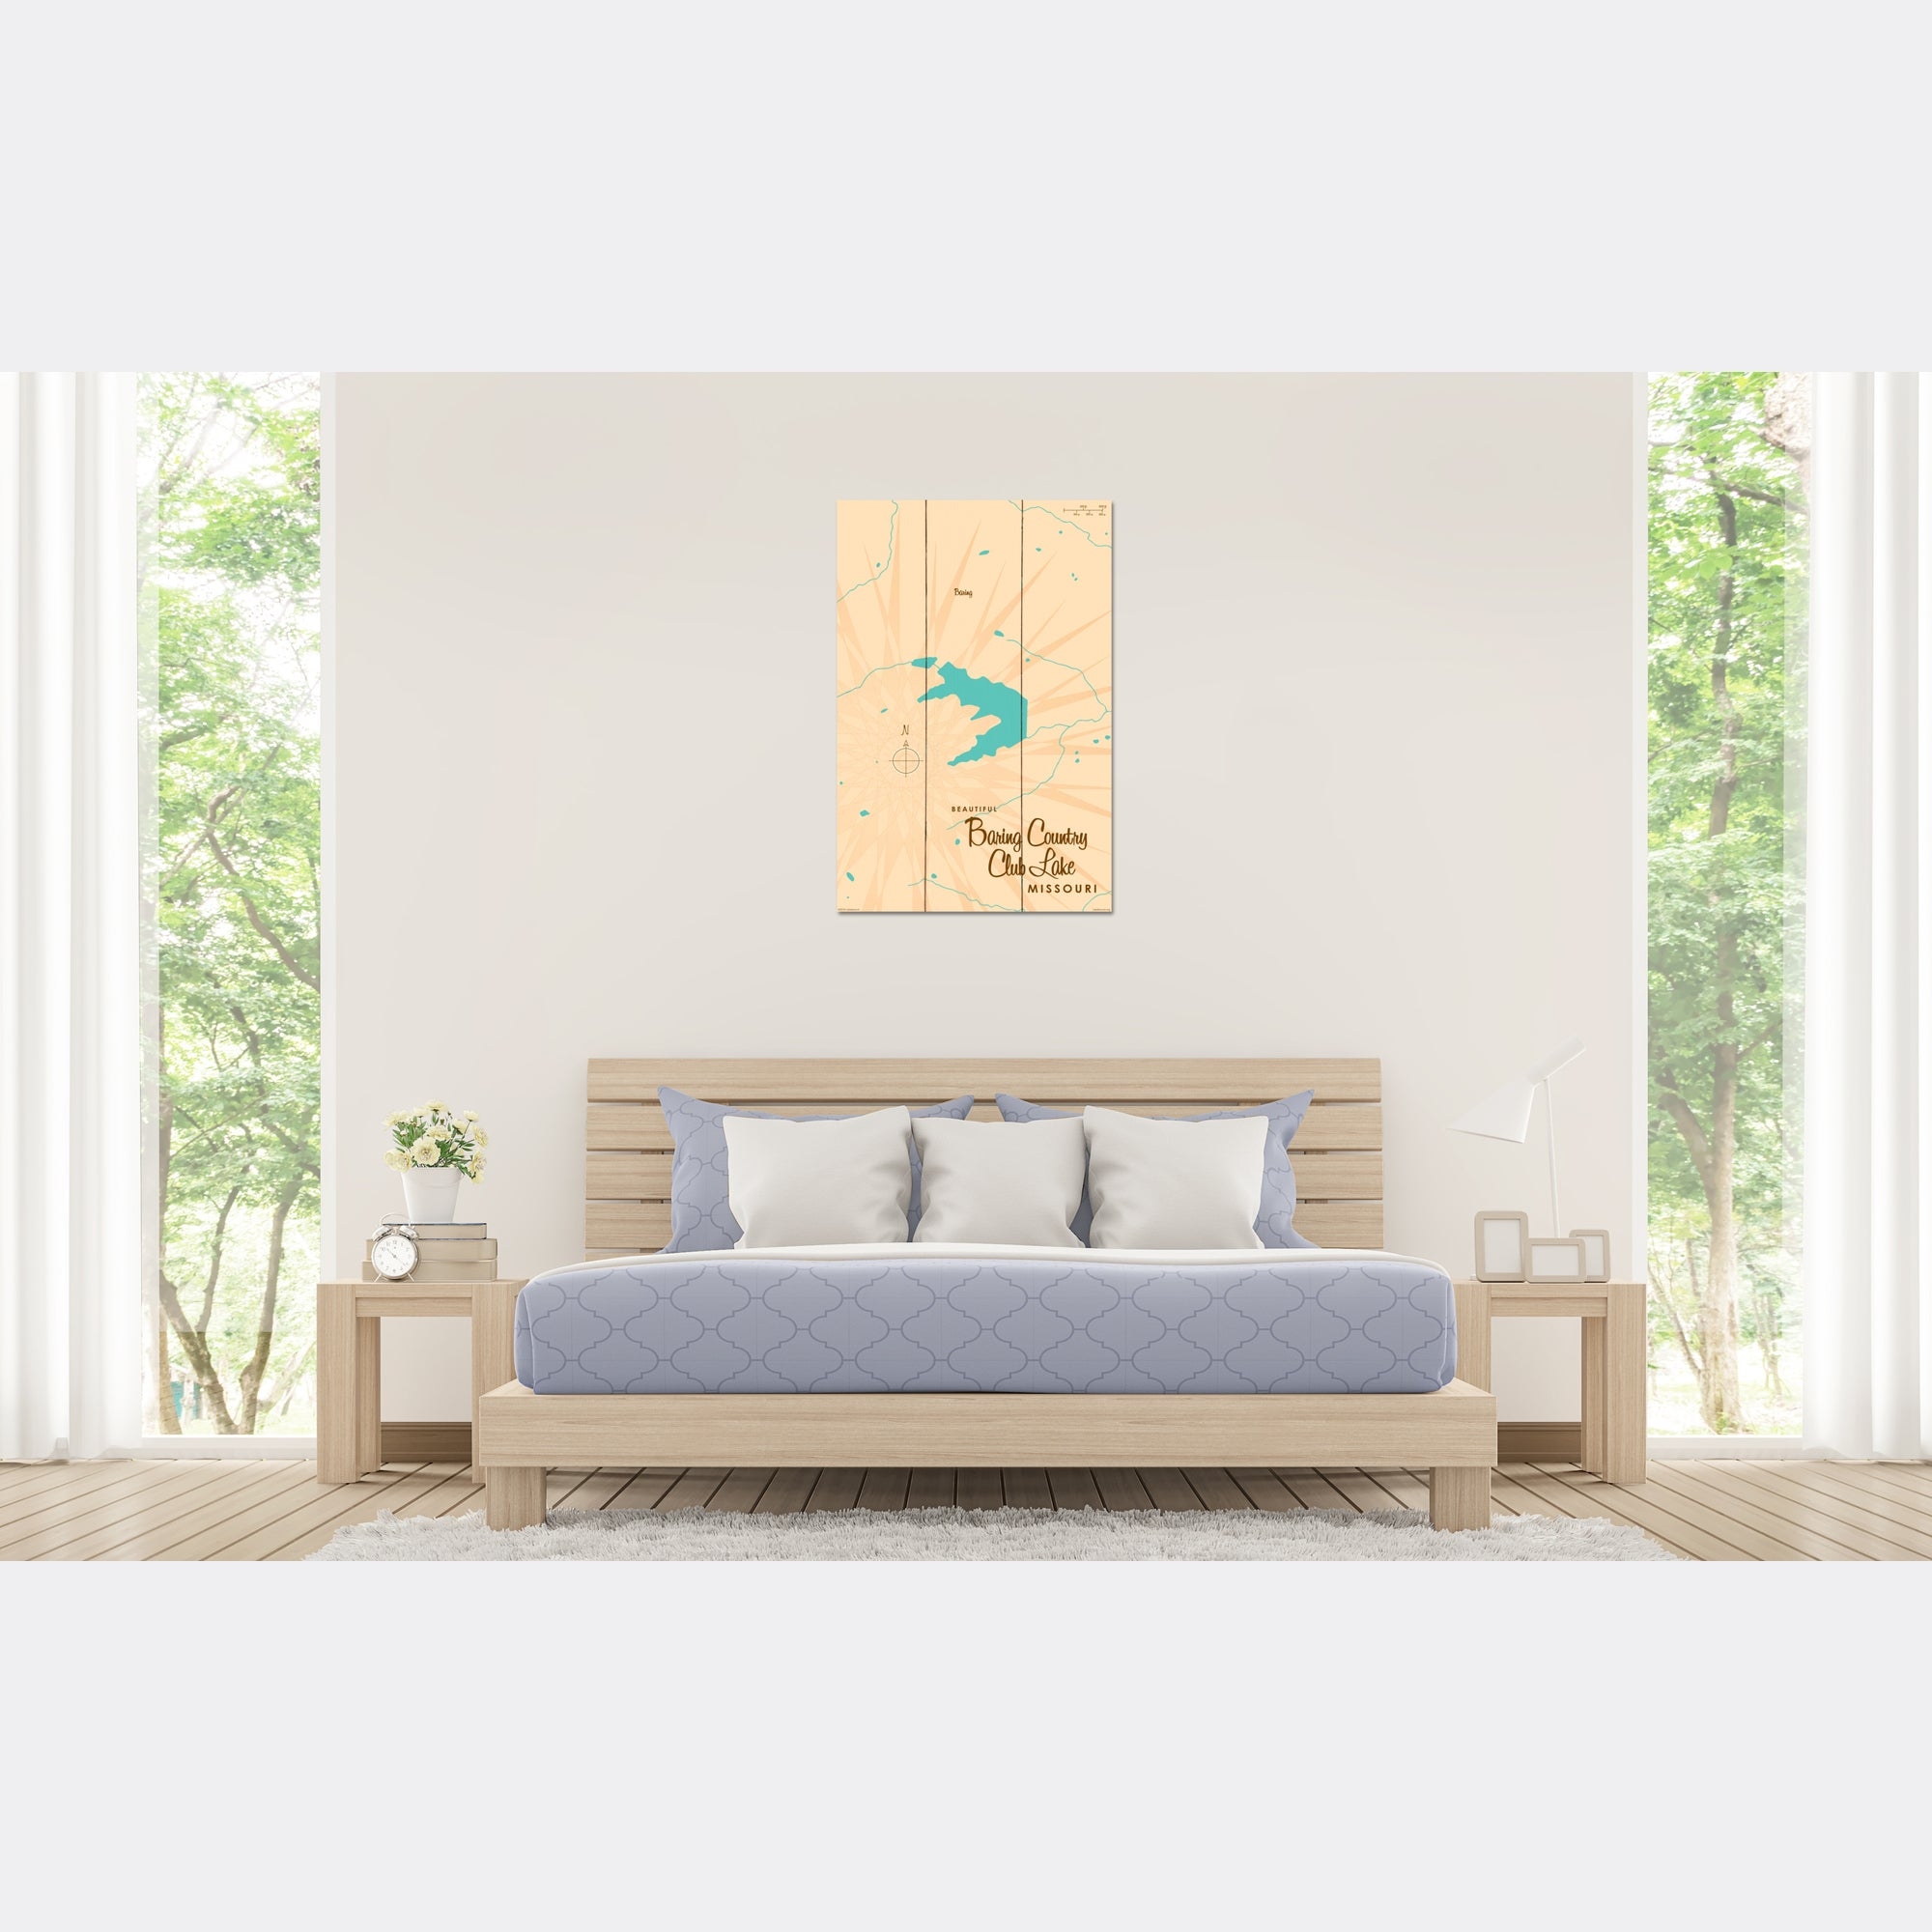 Baring Country Club Lake Missouri, Wood Sign Map Art